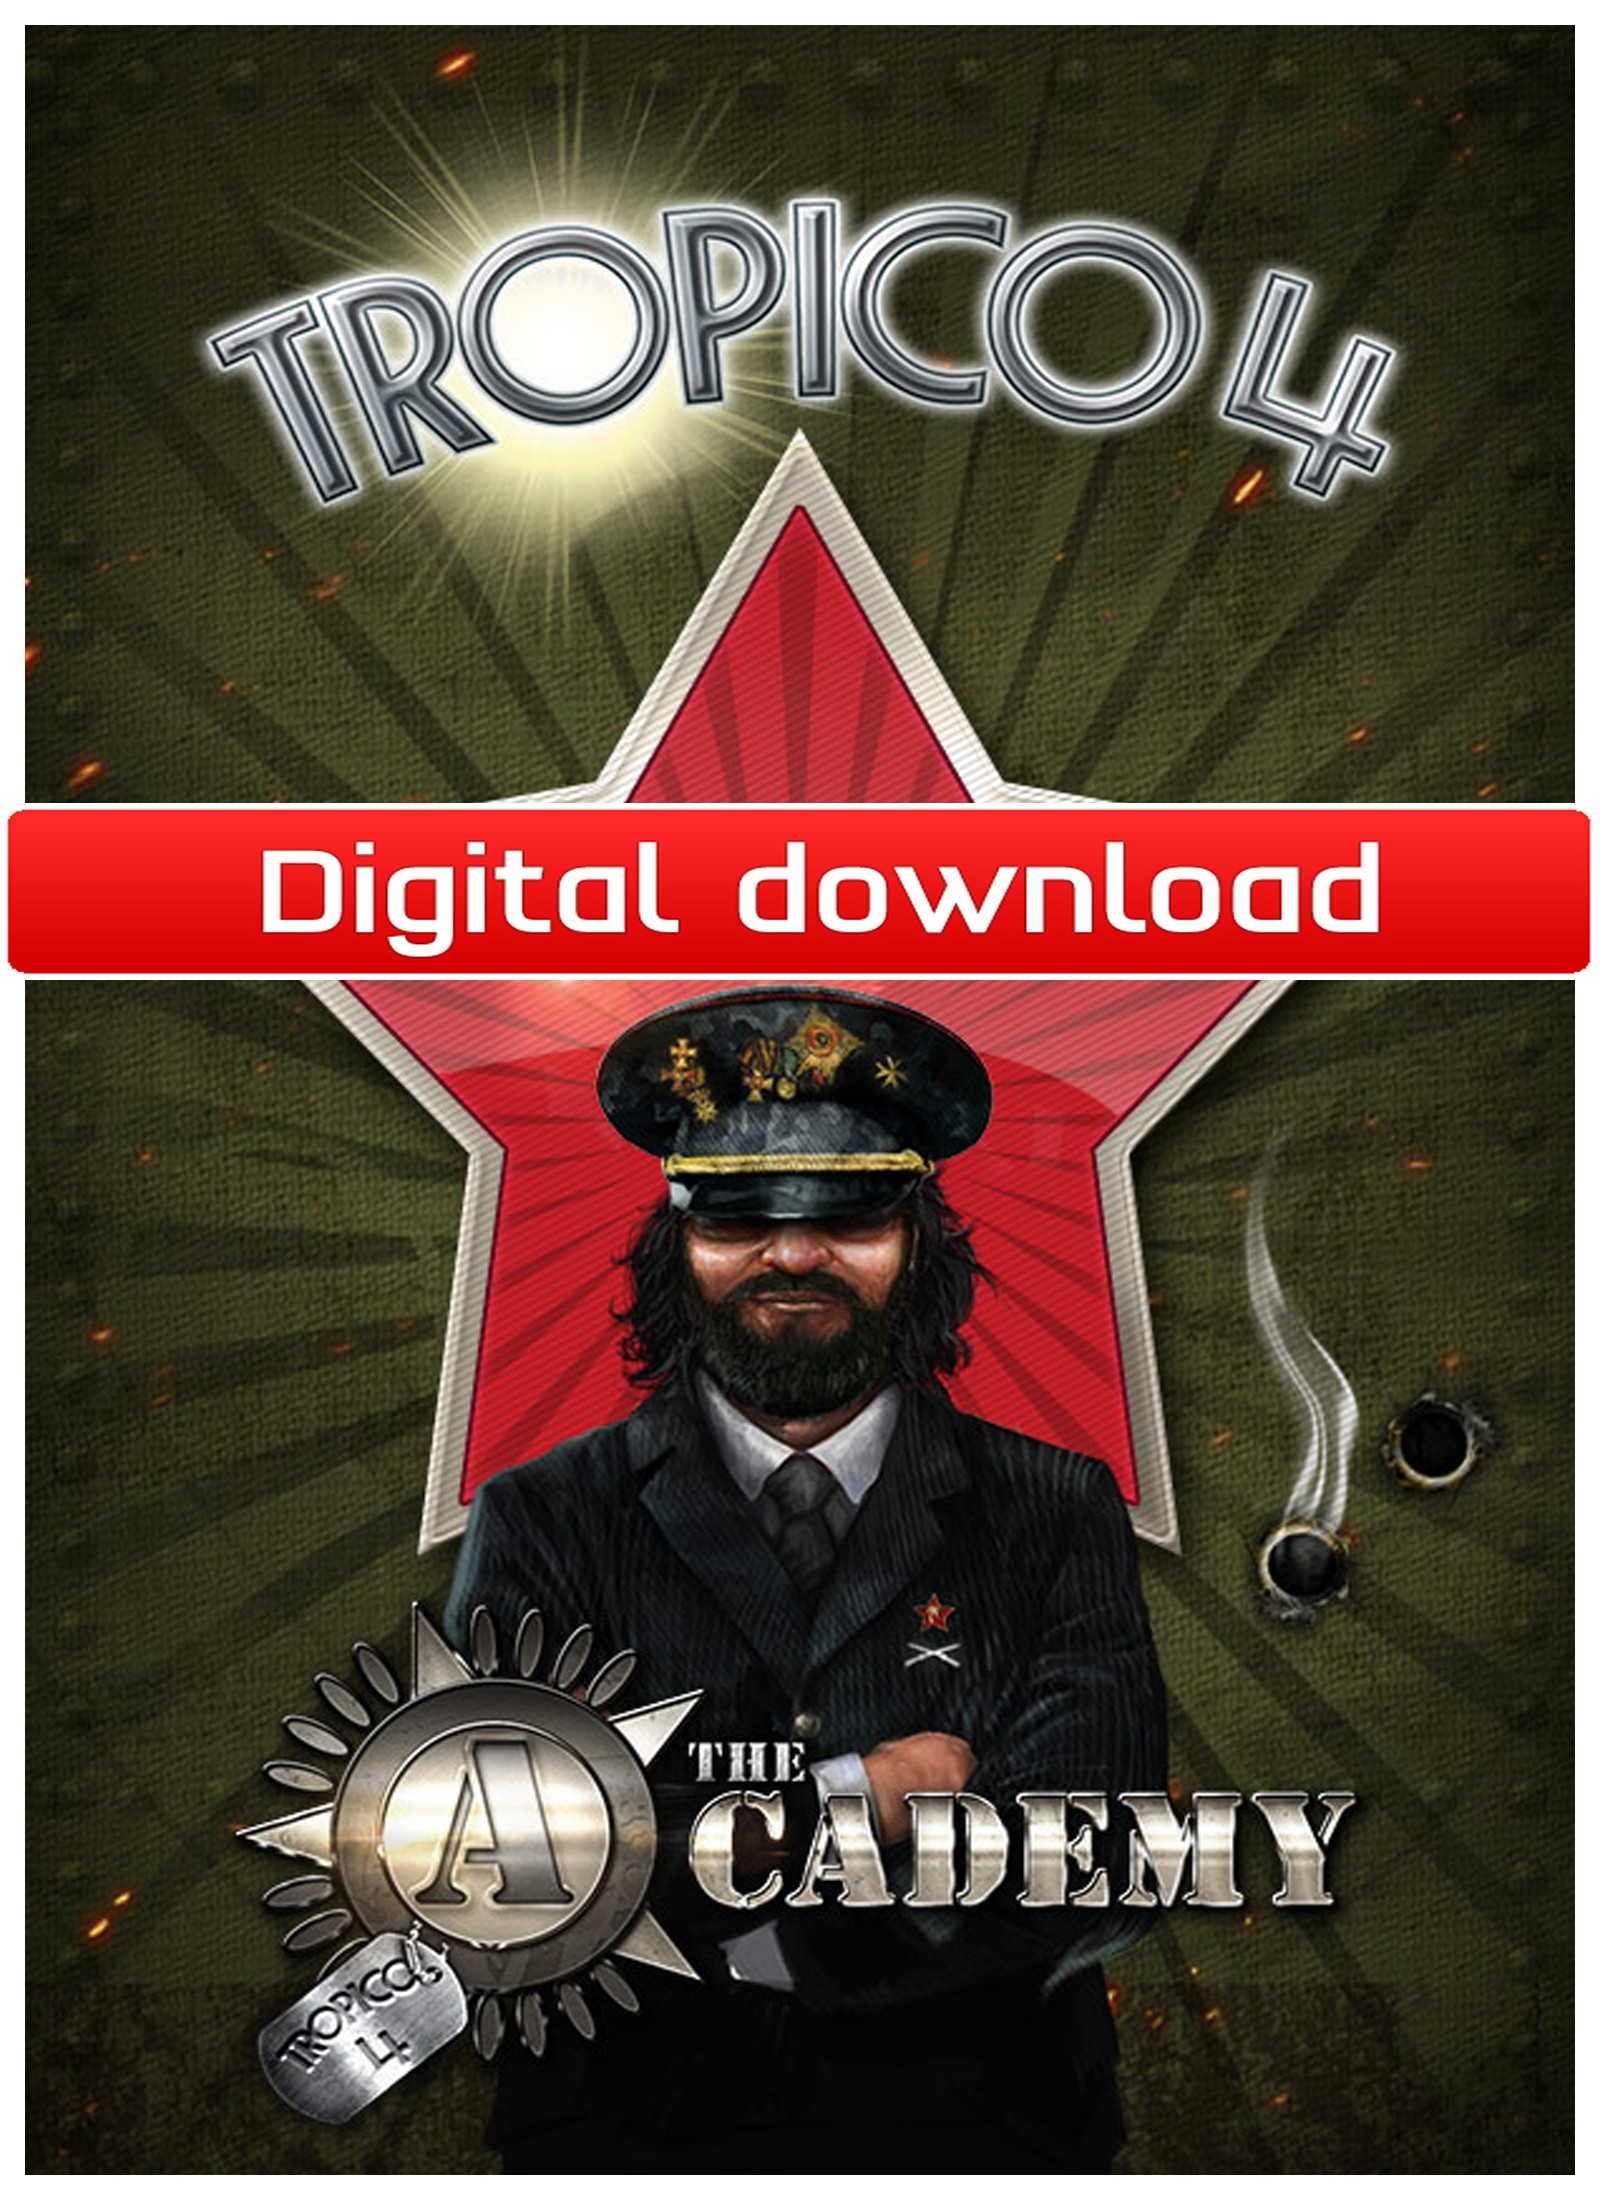 33342 : Tropico 4: The Academy DLC (PC nedlastning)